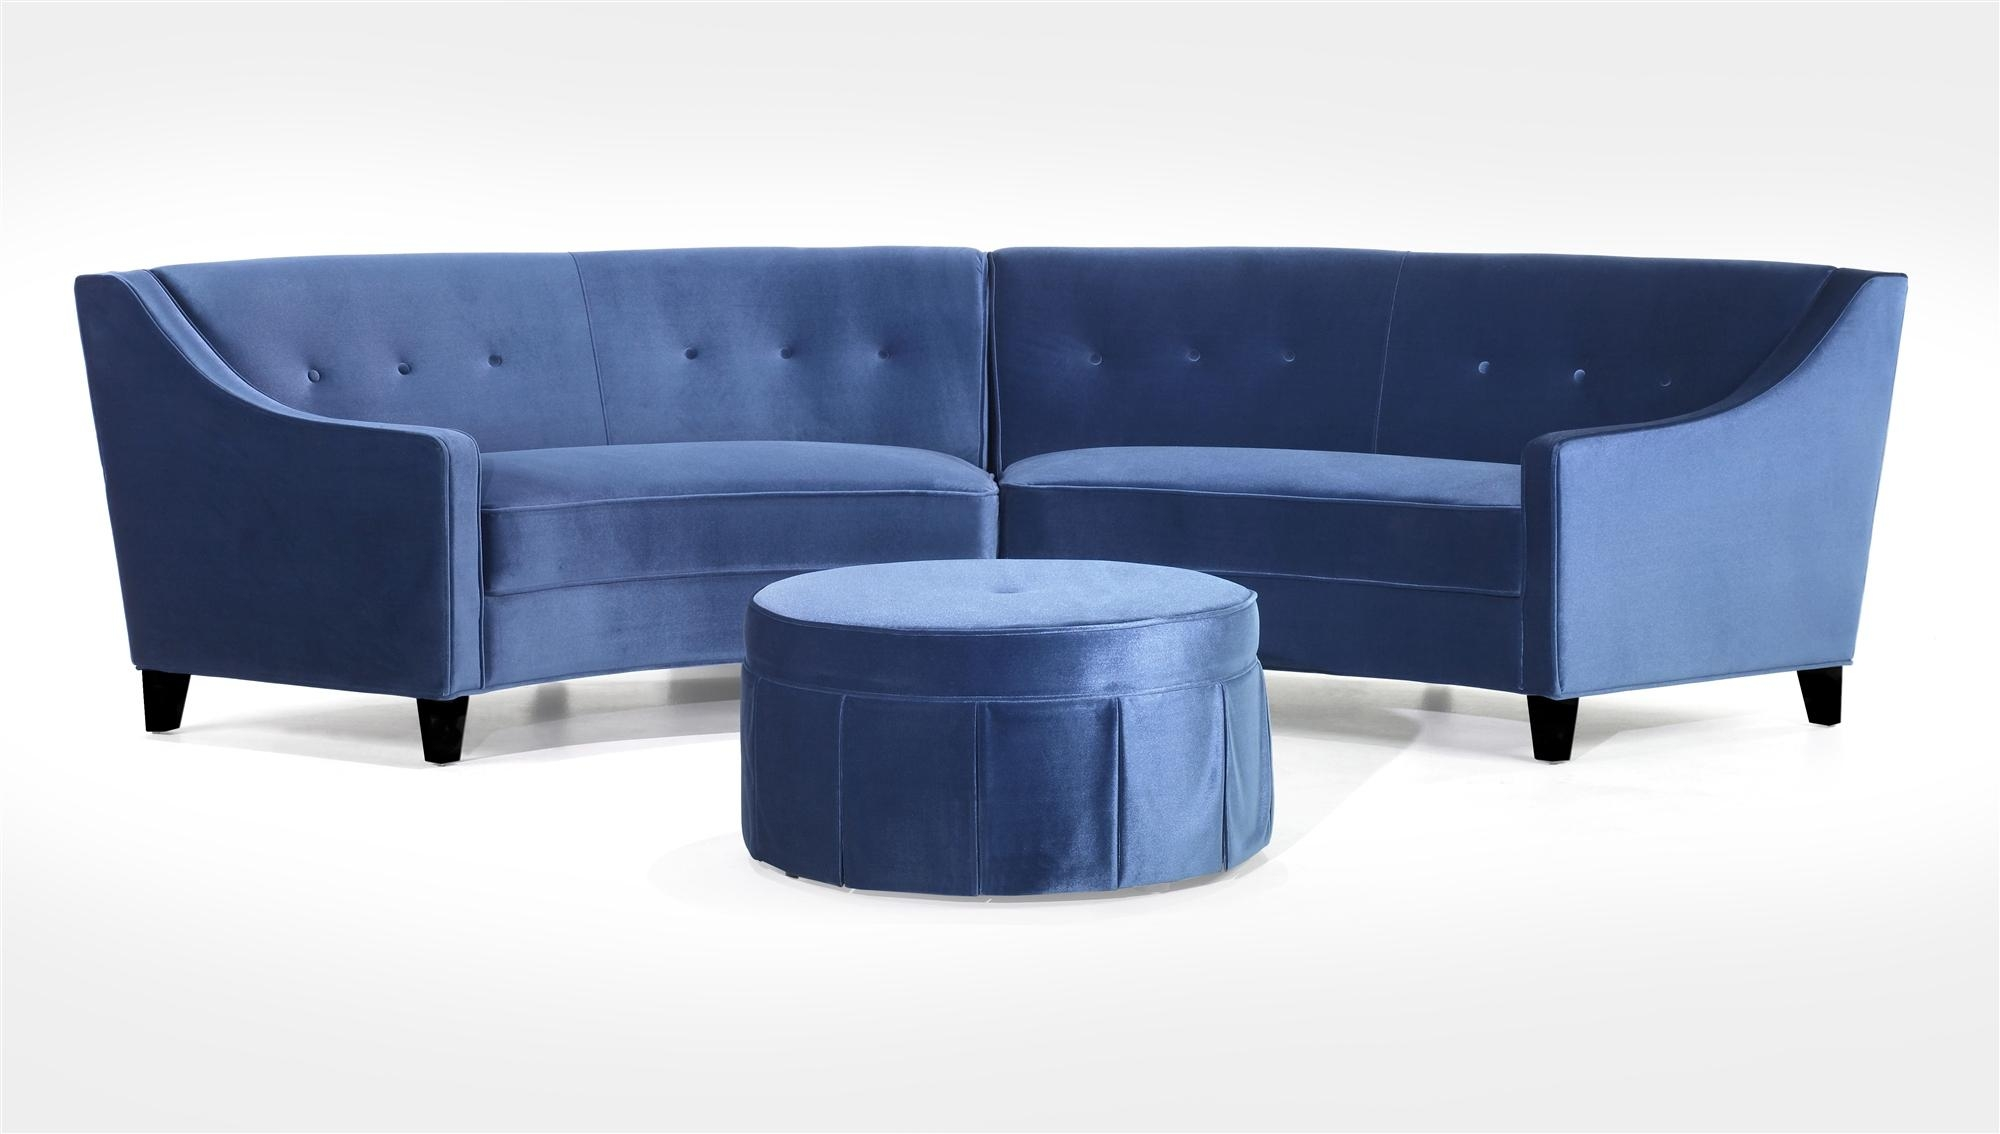 Sofas Center : Curved Sectional Sofas Hickory Nc For Small Spaces For Small Curved Sectional Sofas (View 13 of 20)